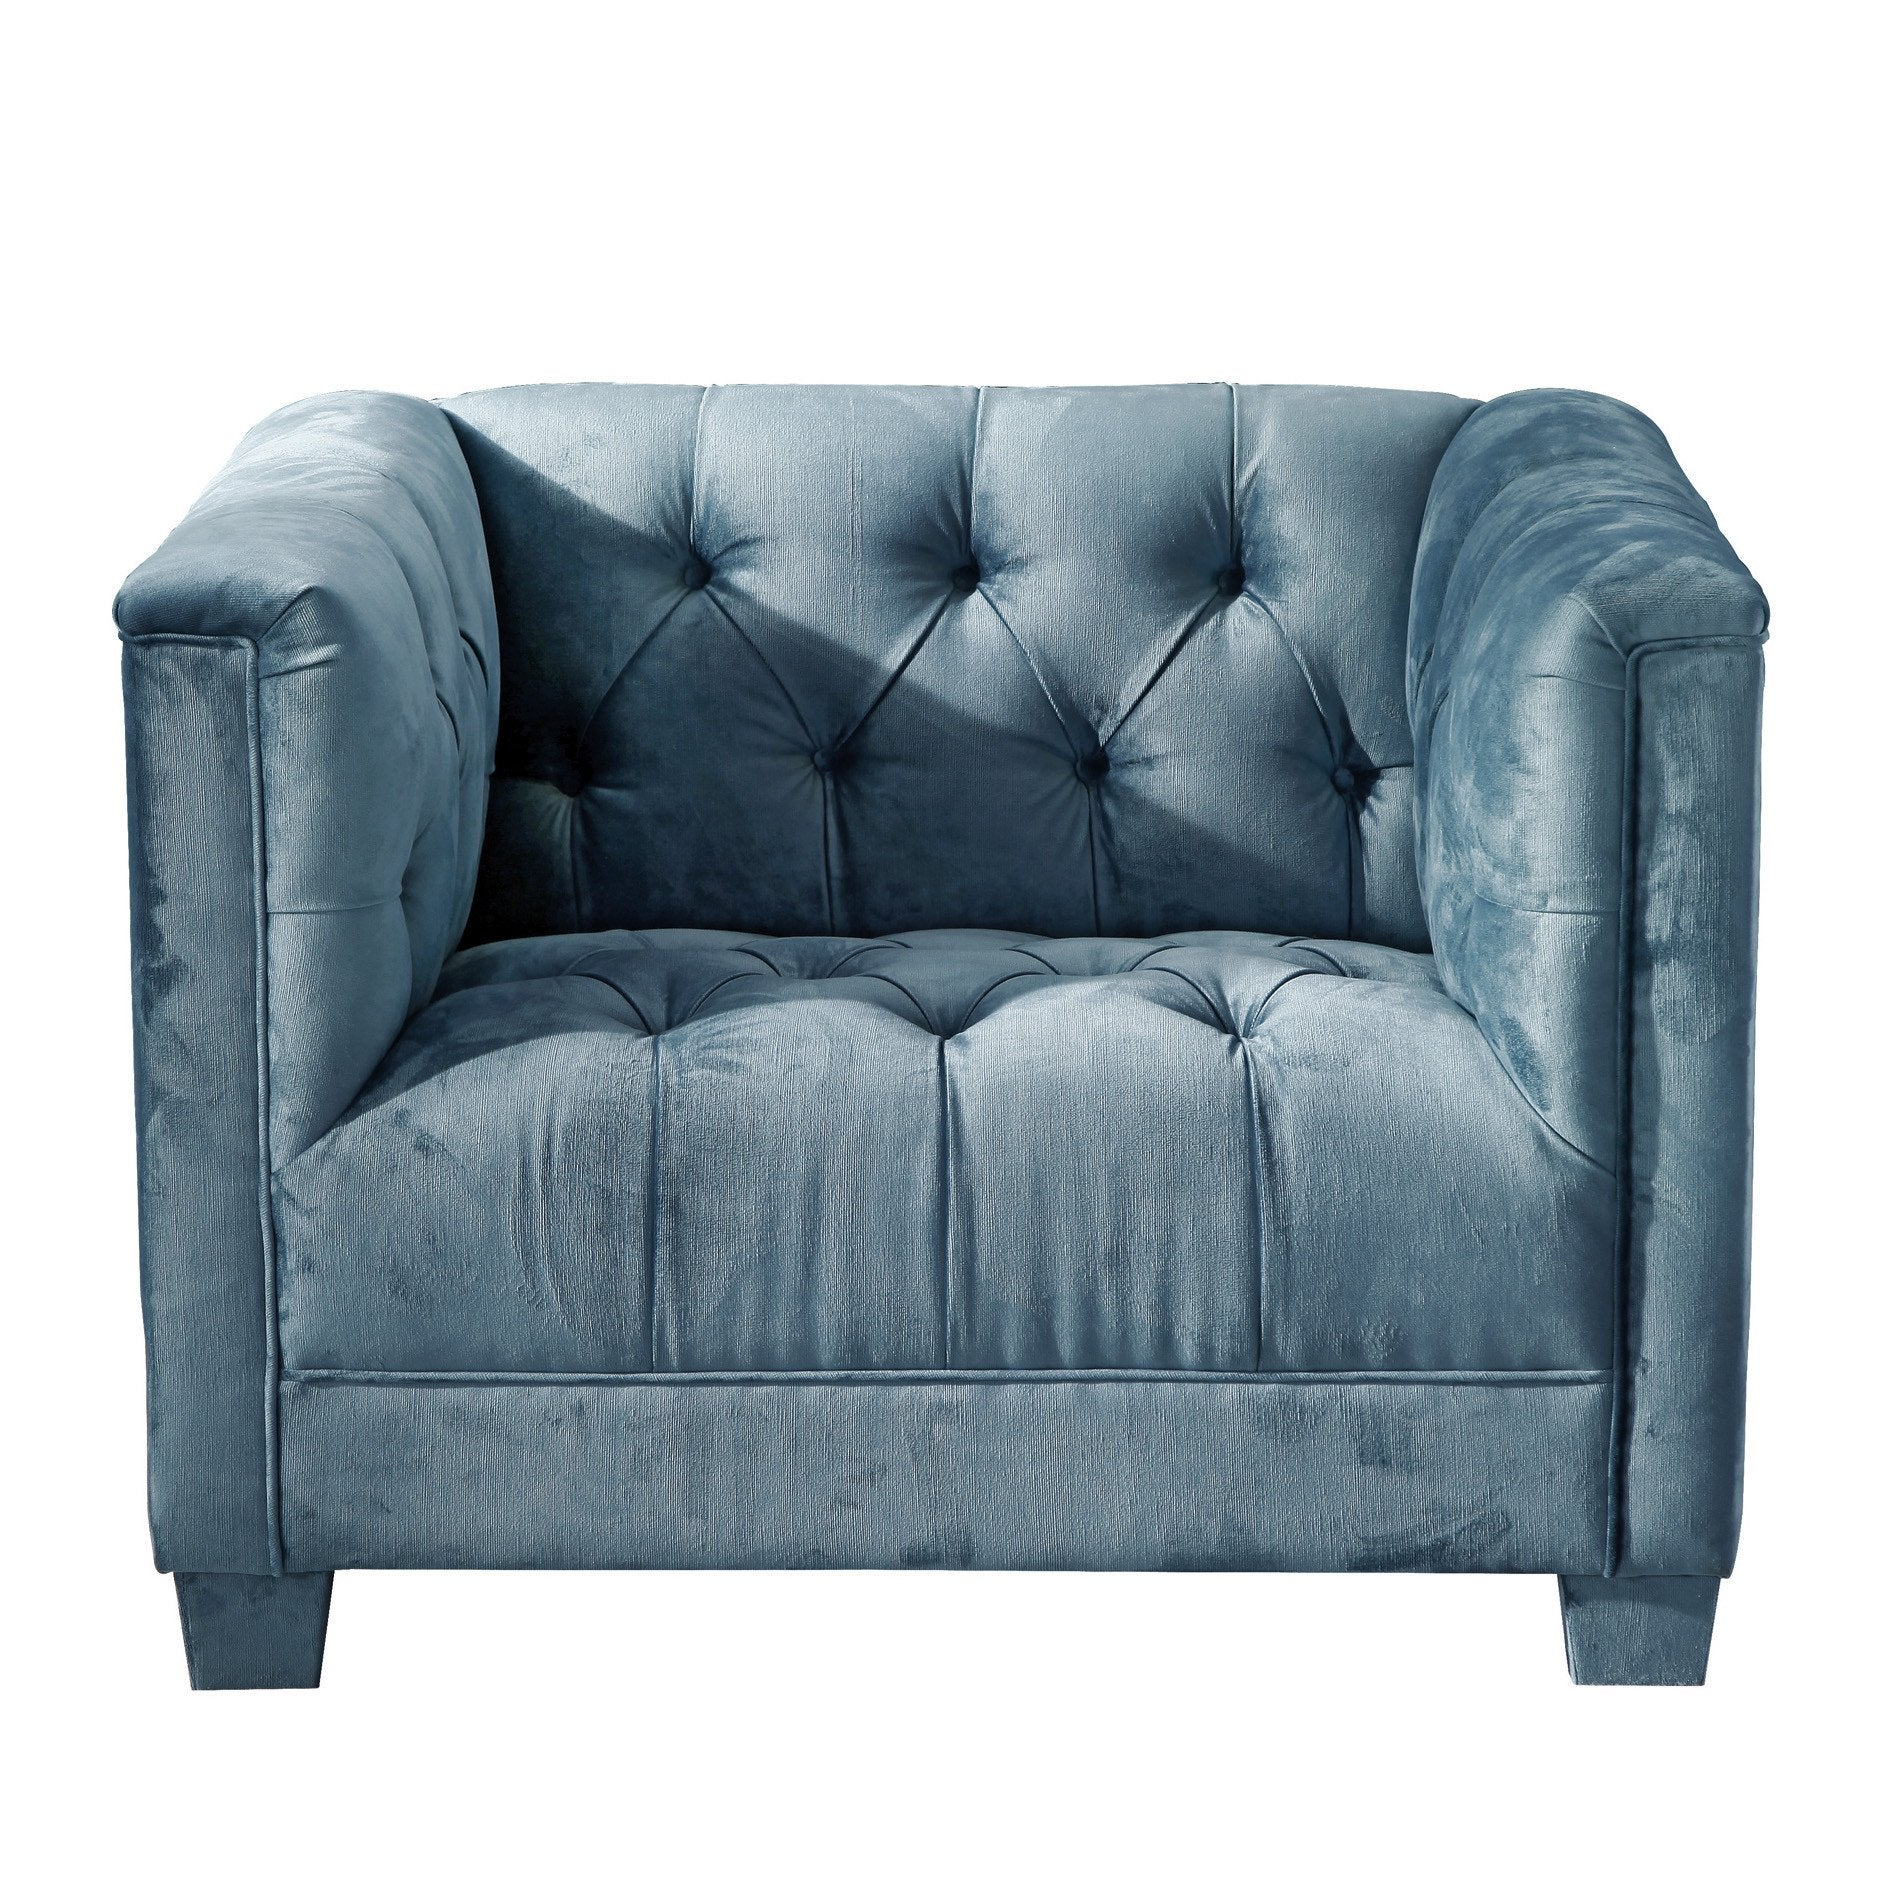 Luxor 3 Seater Teal